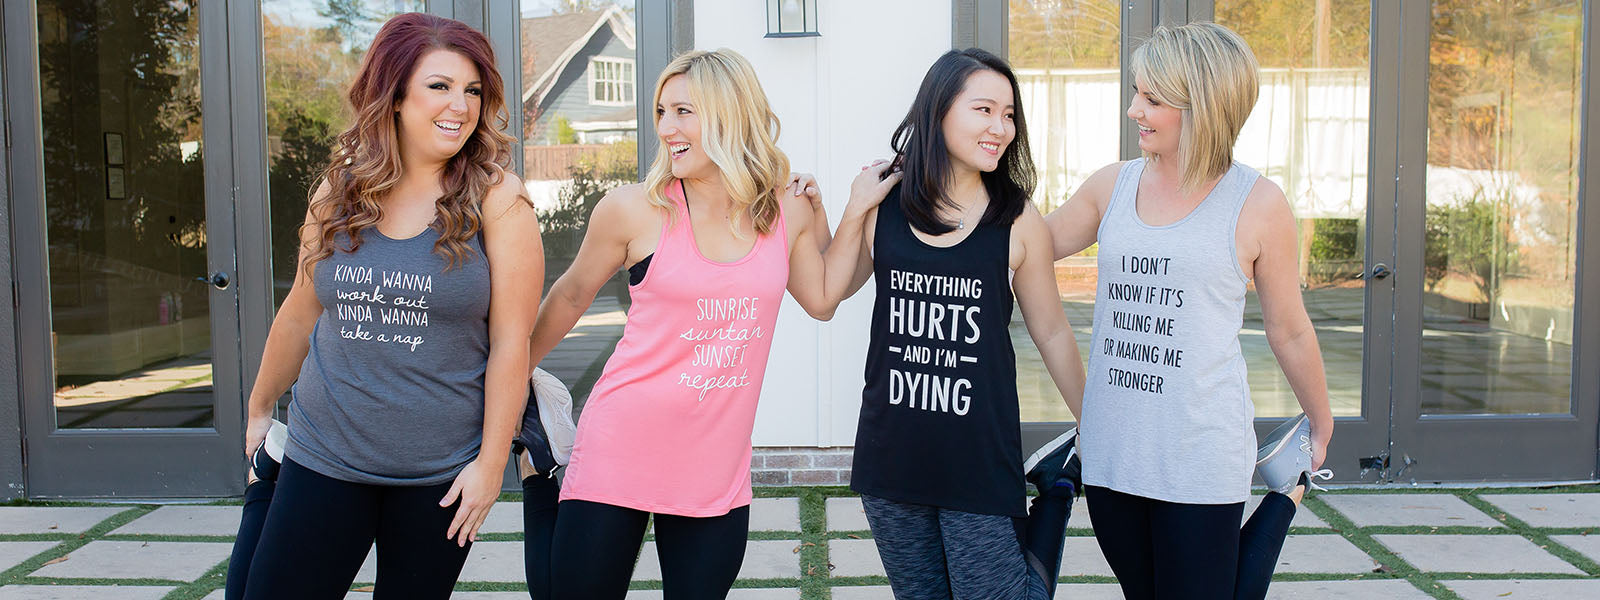 Mary Square Tank Tops